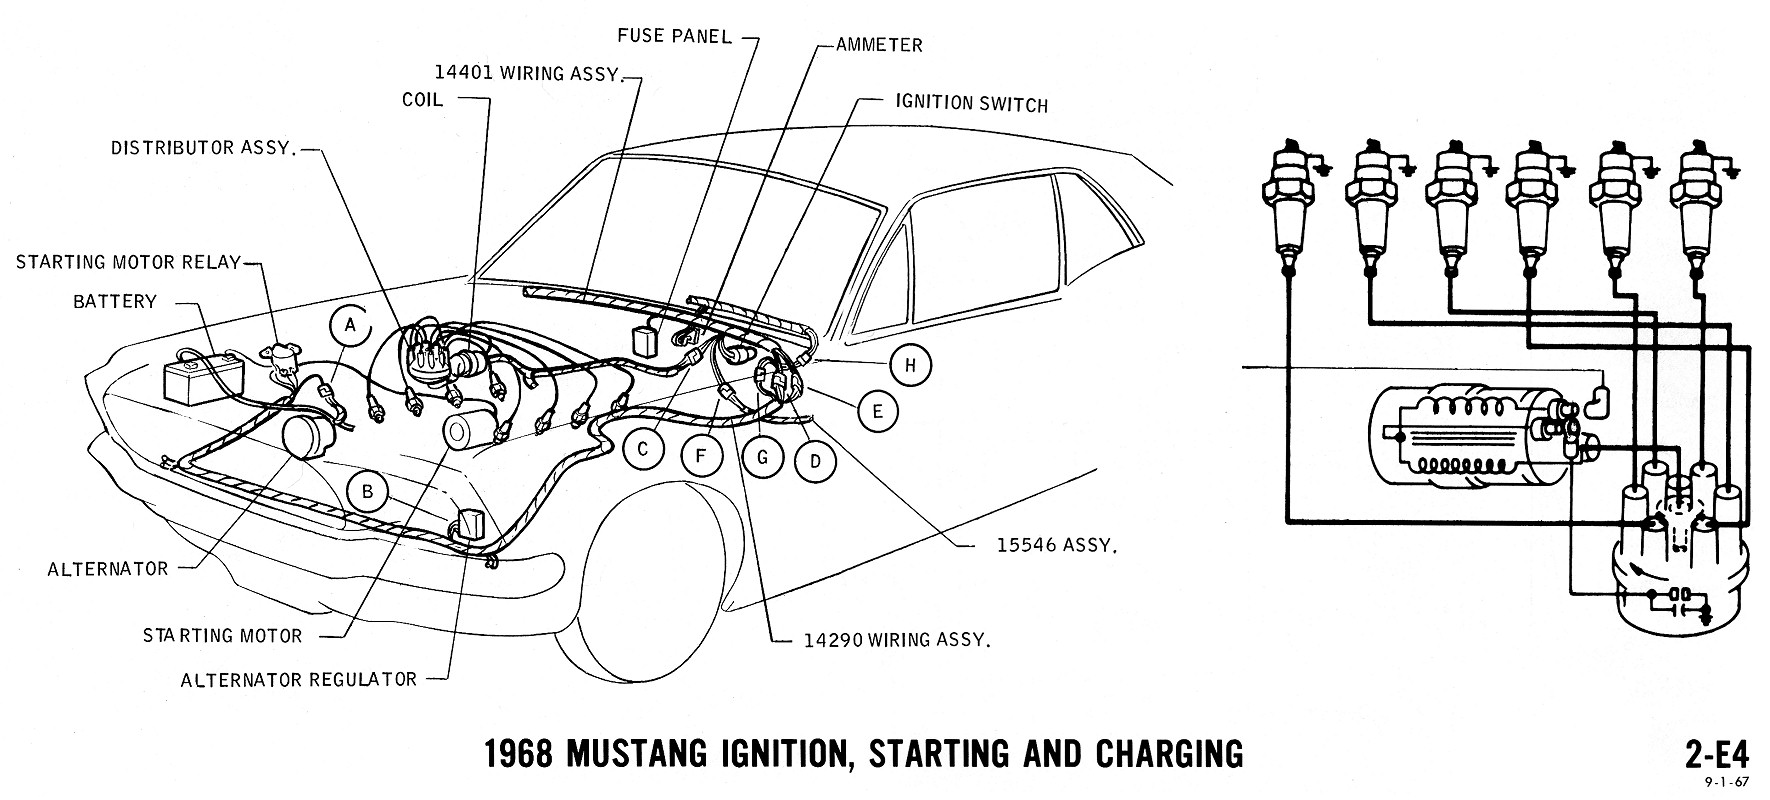 Mustang Wiring Diagram Ignition Starting Charging